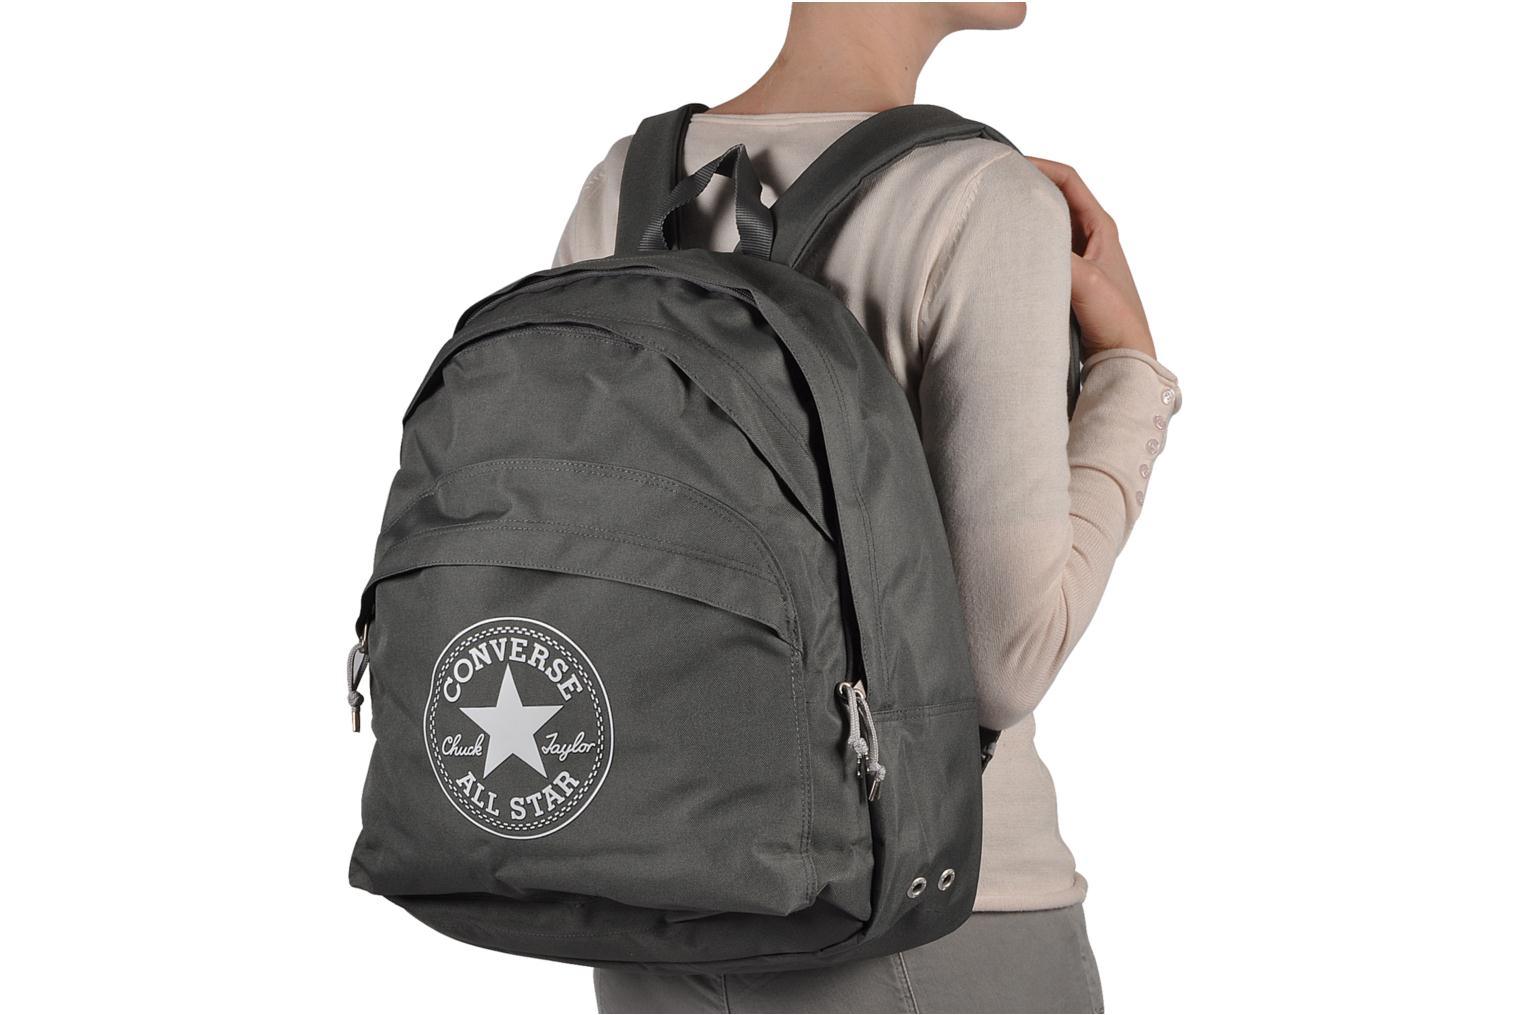 Backpack Charbongris